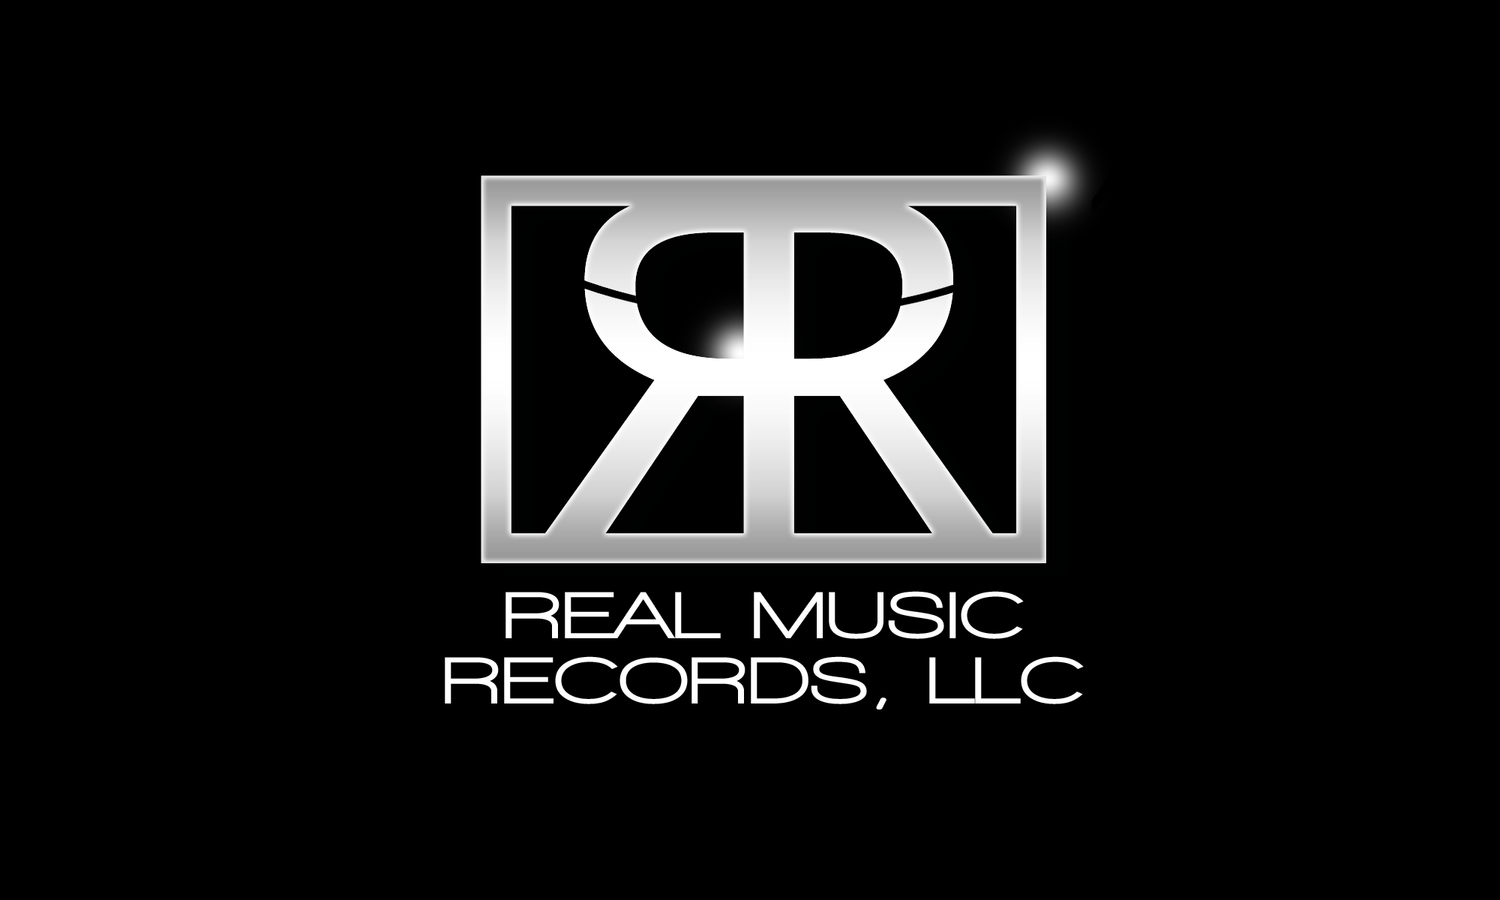 Real Music Records